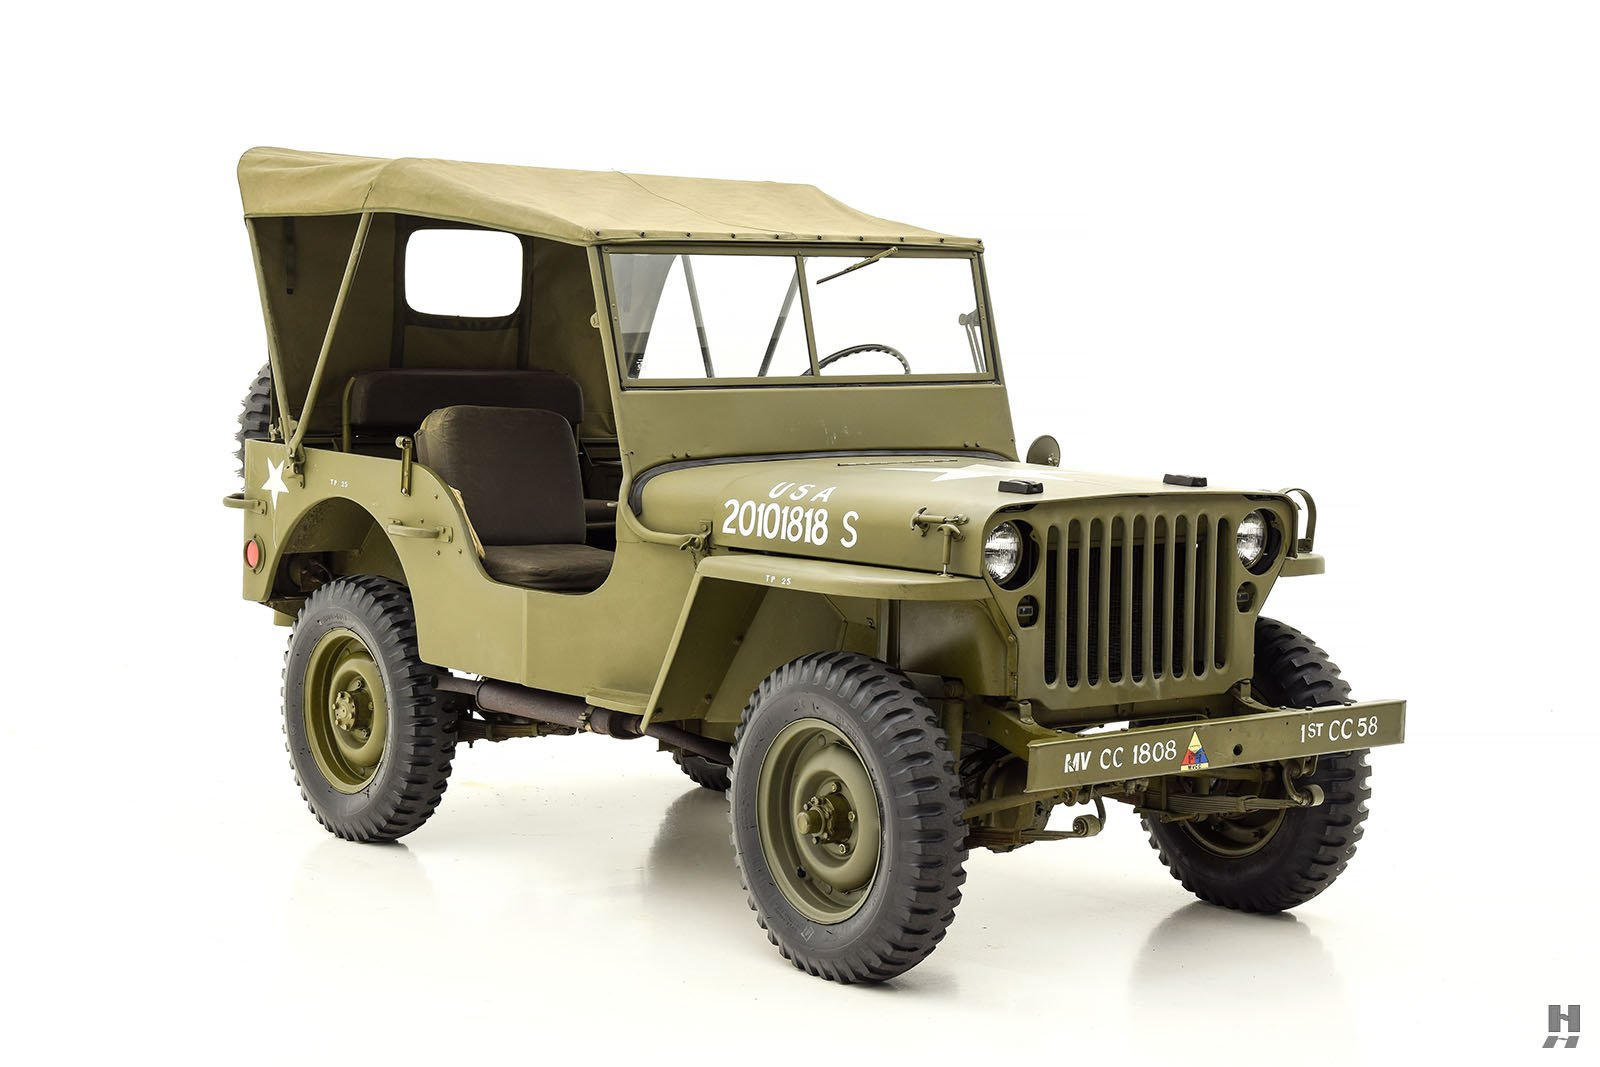 Austin, Bantam, and Willys: Birth of the Jeep